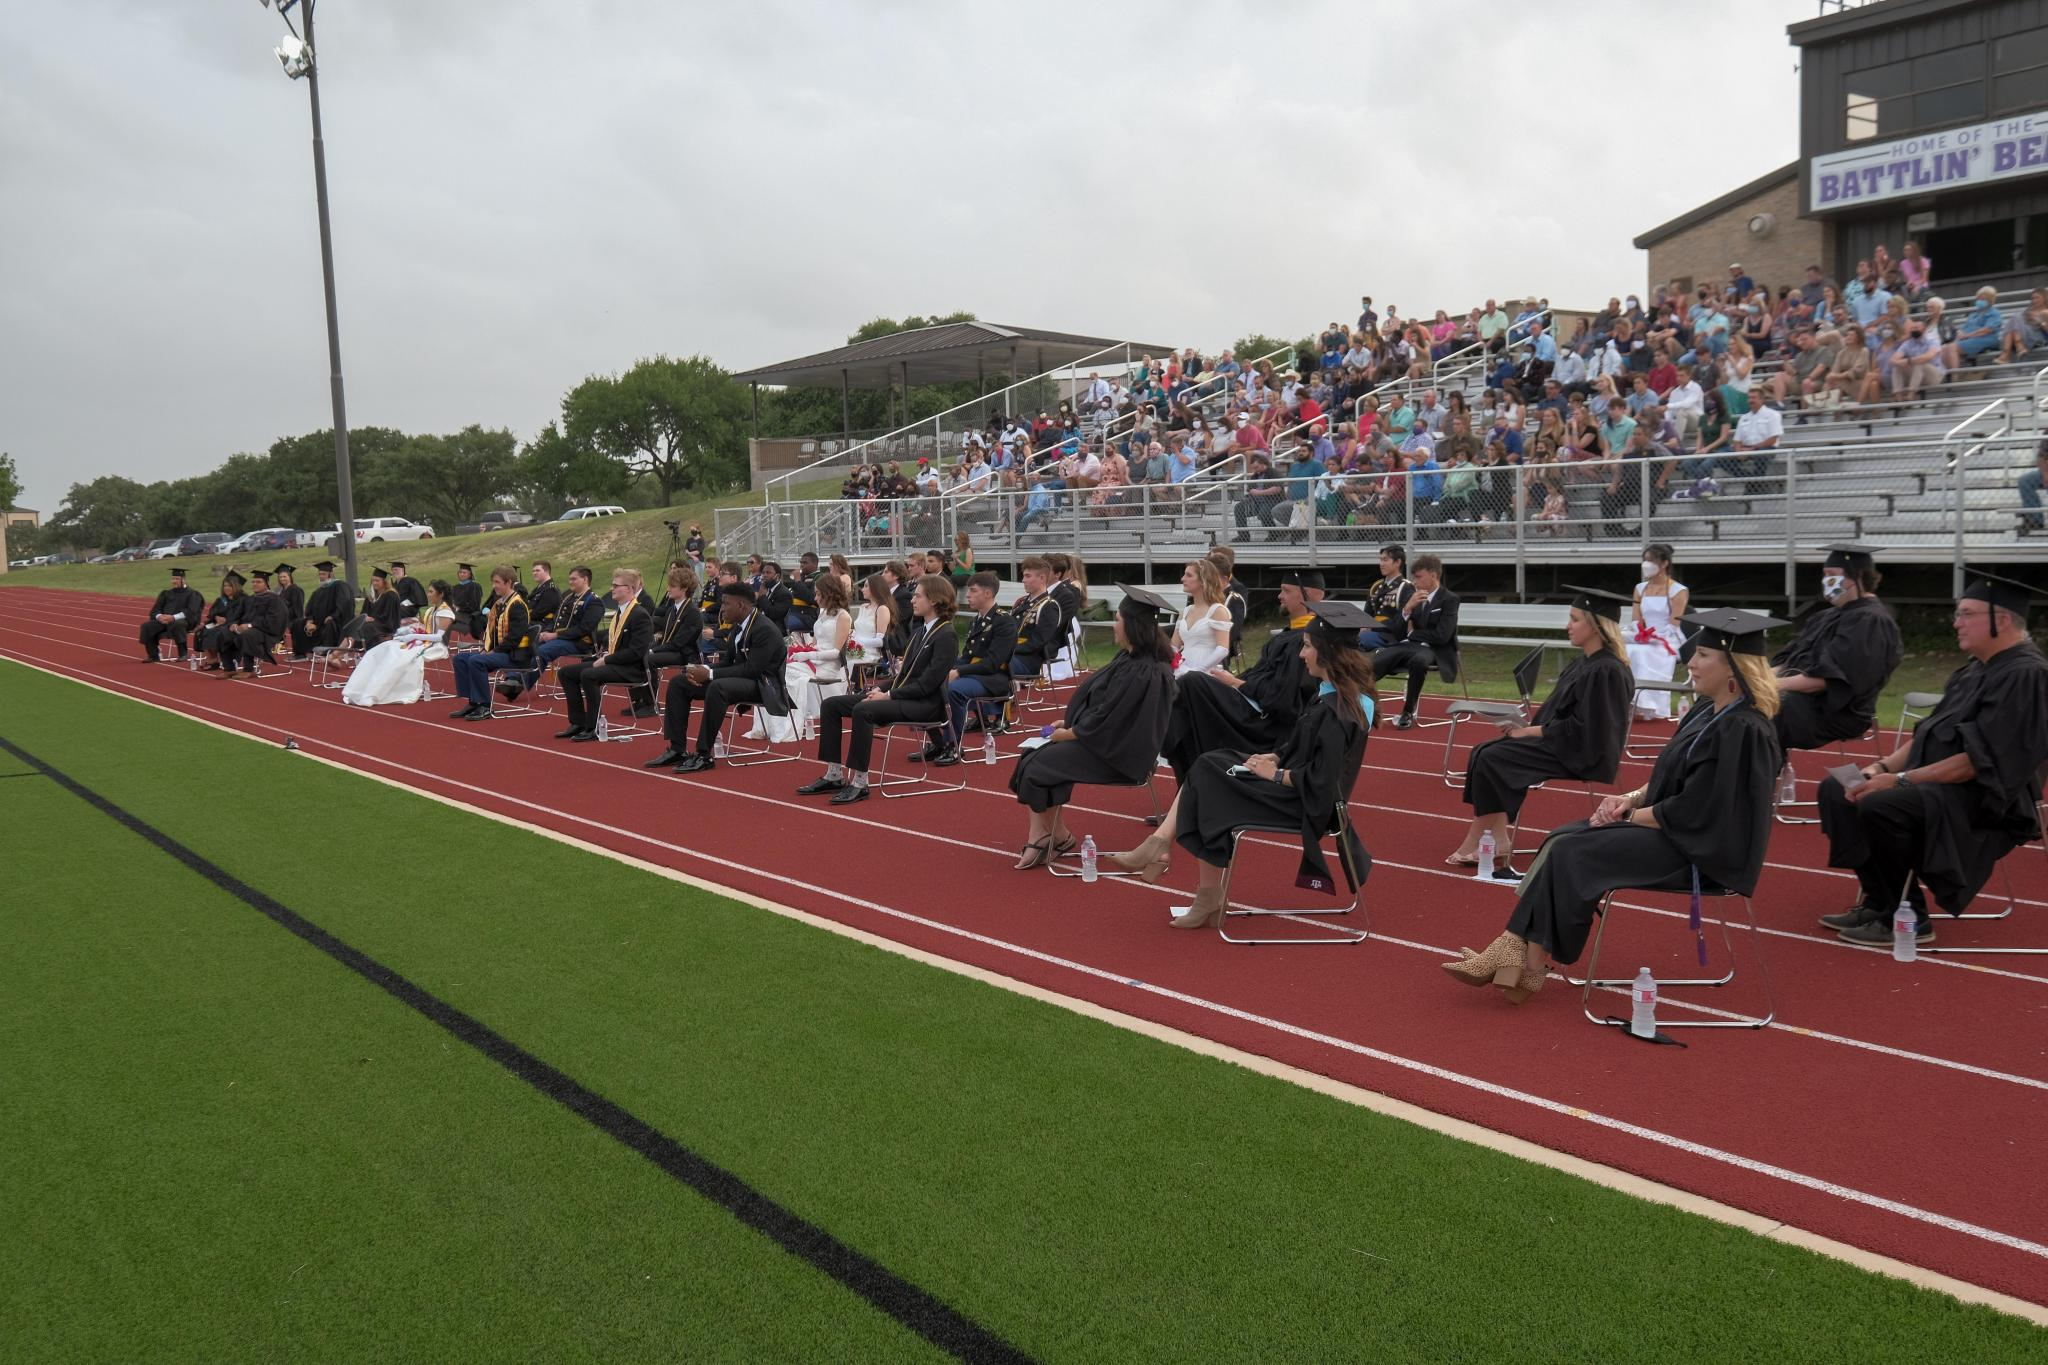 The Academy faculty joined the Class of 2020 on the track to provide social distancing during the Commencement ceremony. Originally scheduled for May 9, the ceremony was moved to June 27 due to the pandemic. Only 33 of the 46 SMA graduates, including several from other countries, were able to attend the ceremony.